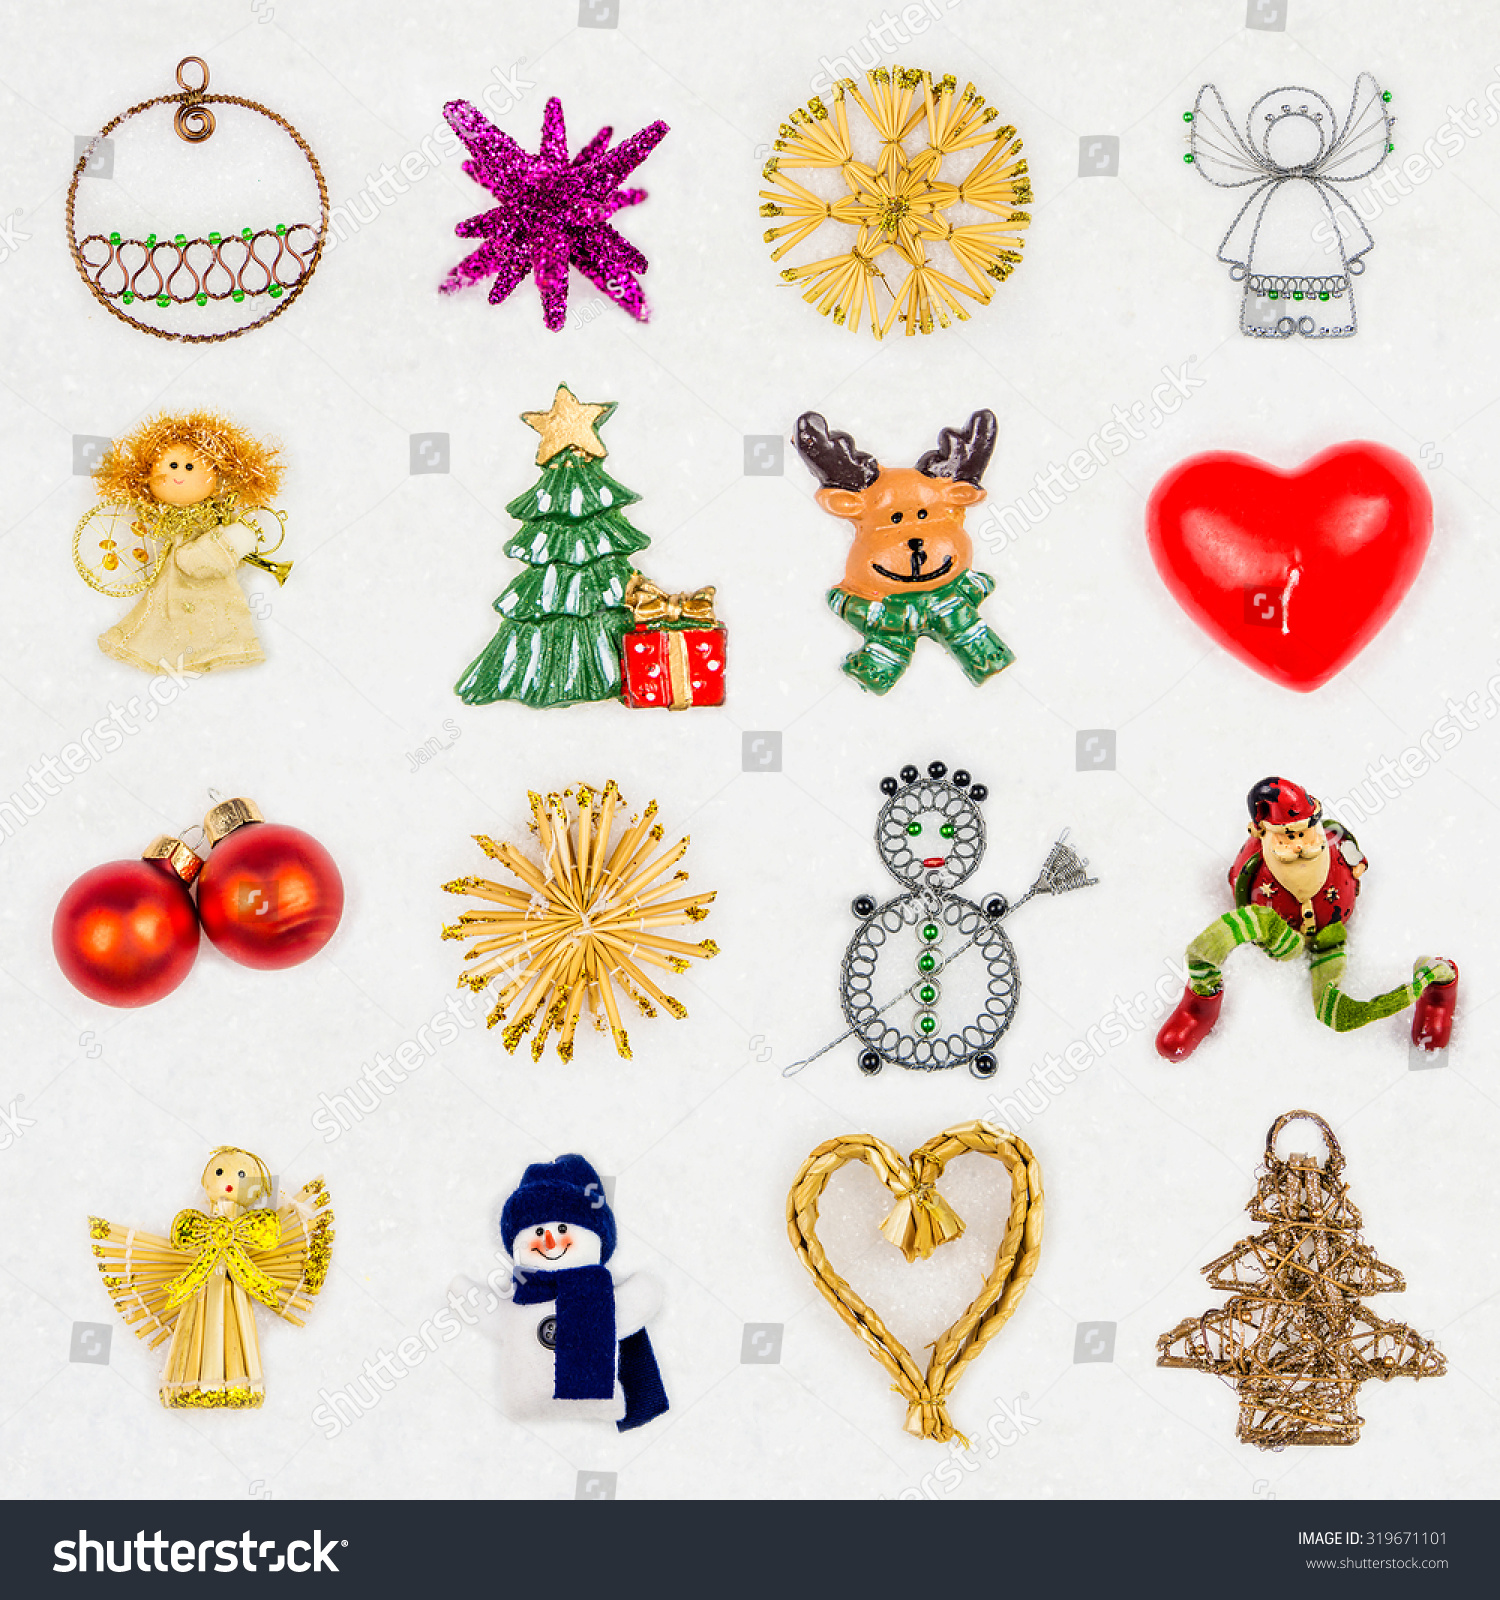 many different christmas decorations on snowy background with variation in color material and shapes - Different Christmas Decorations